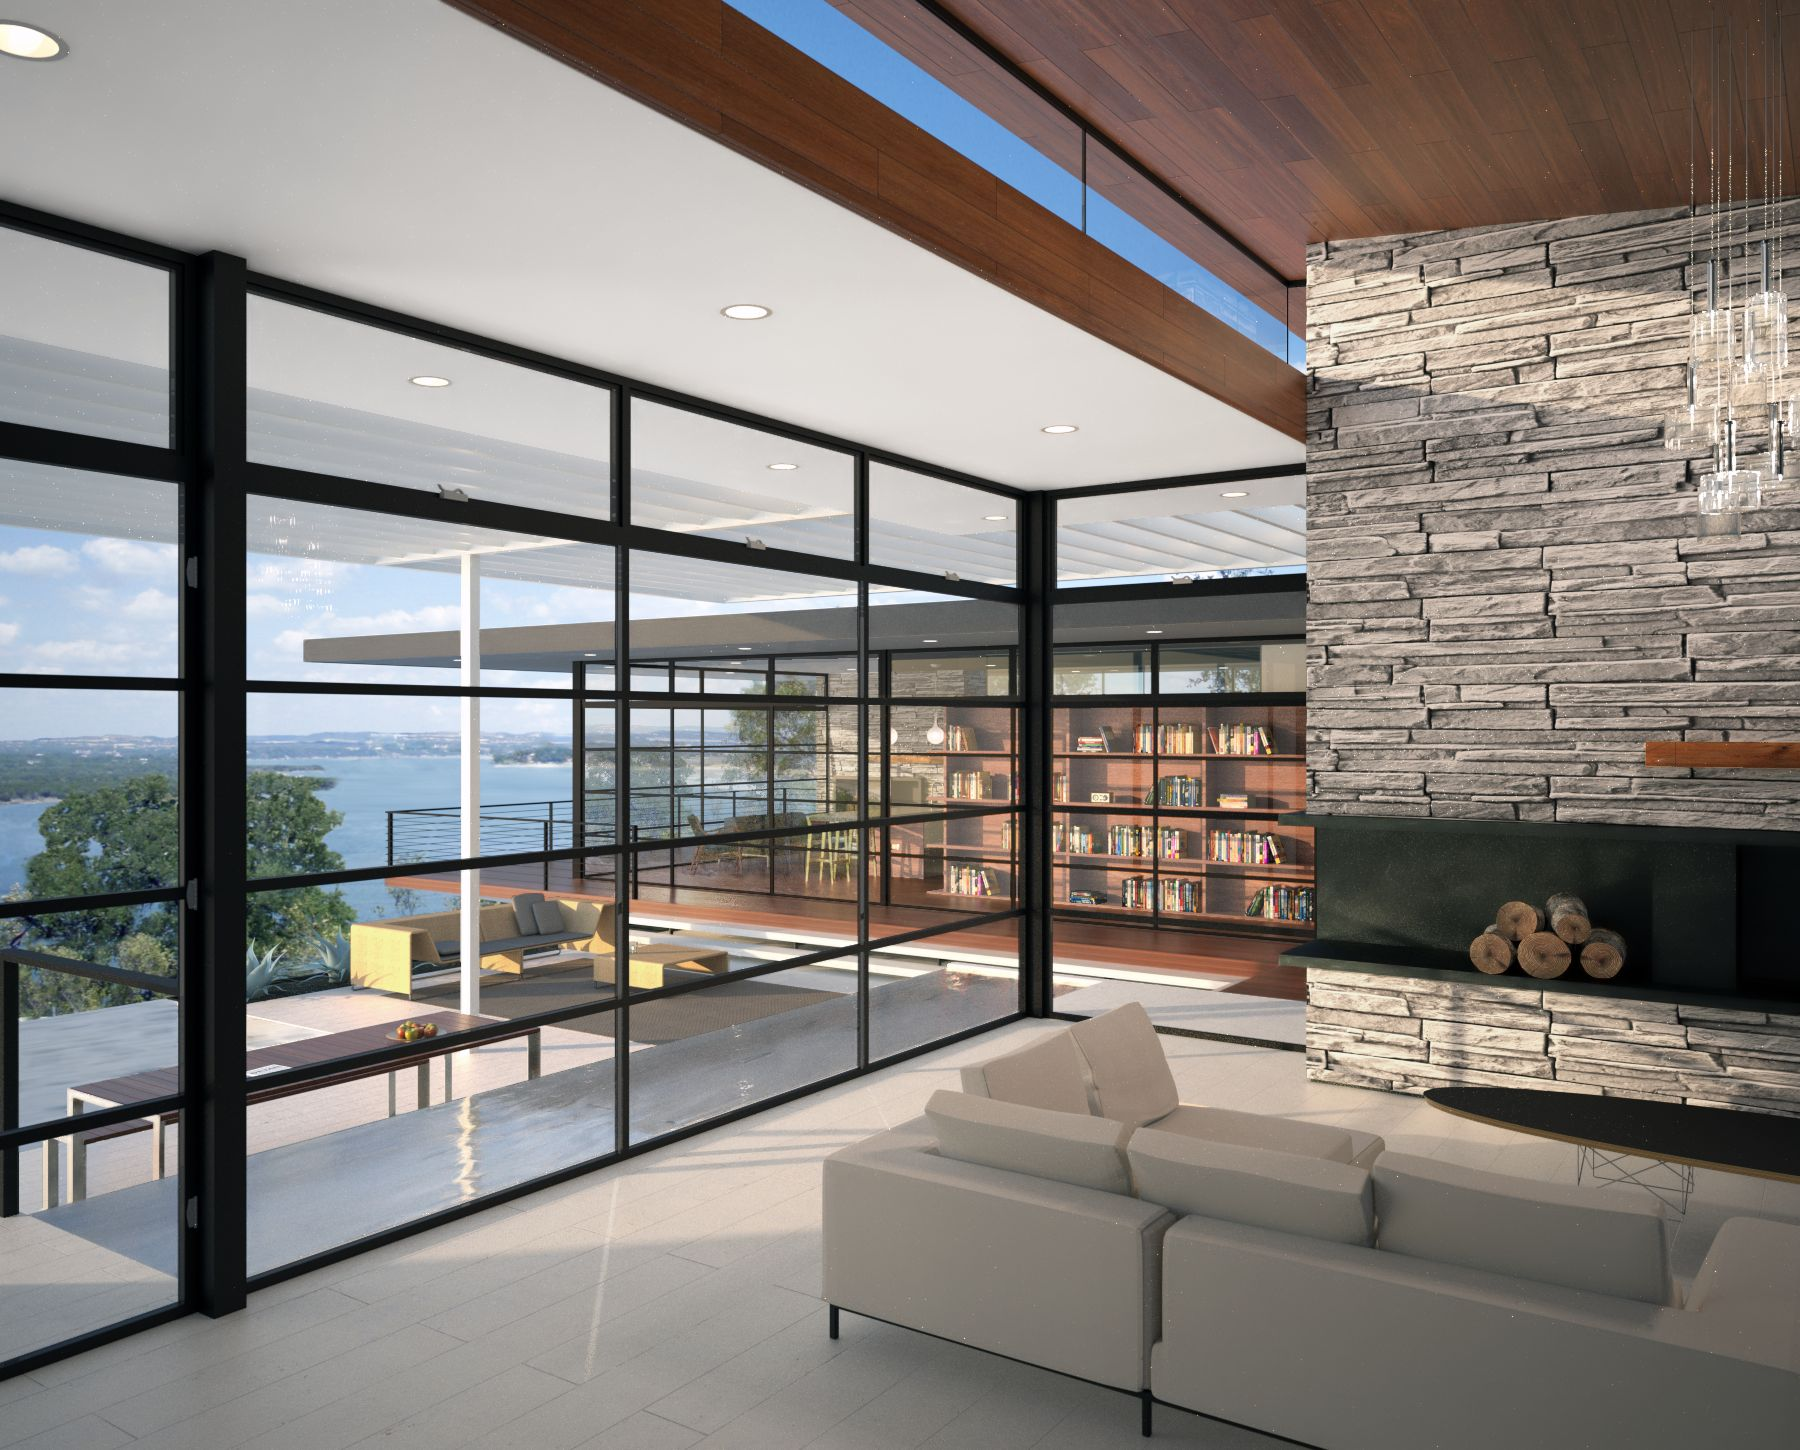 Luxury Modern Home to be built by Foursquare Builders. | Foursquare ...